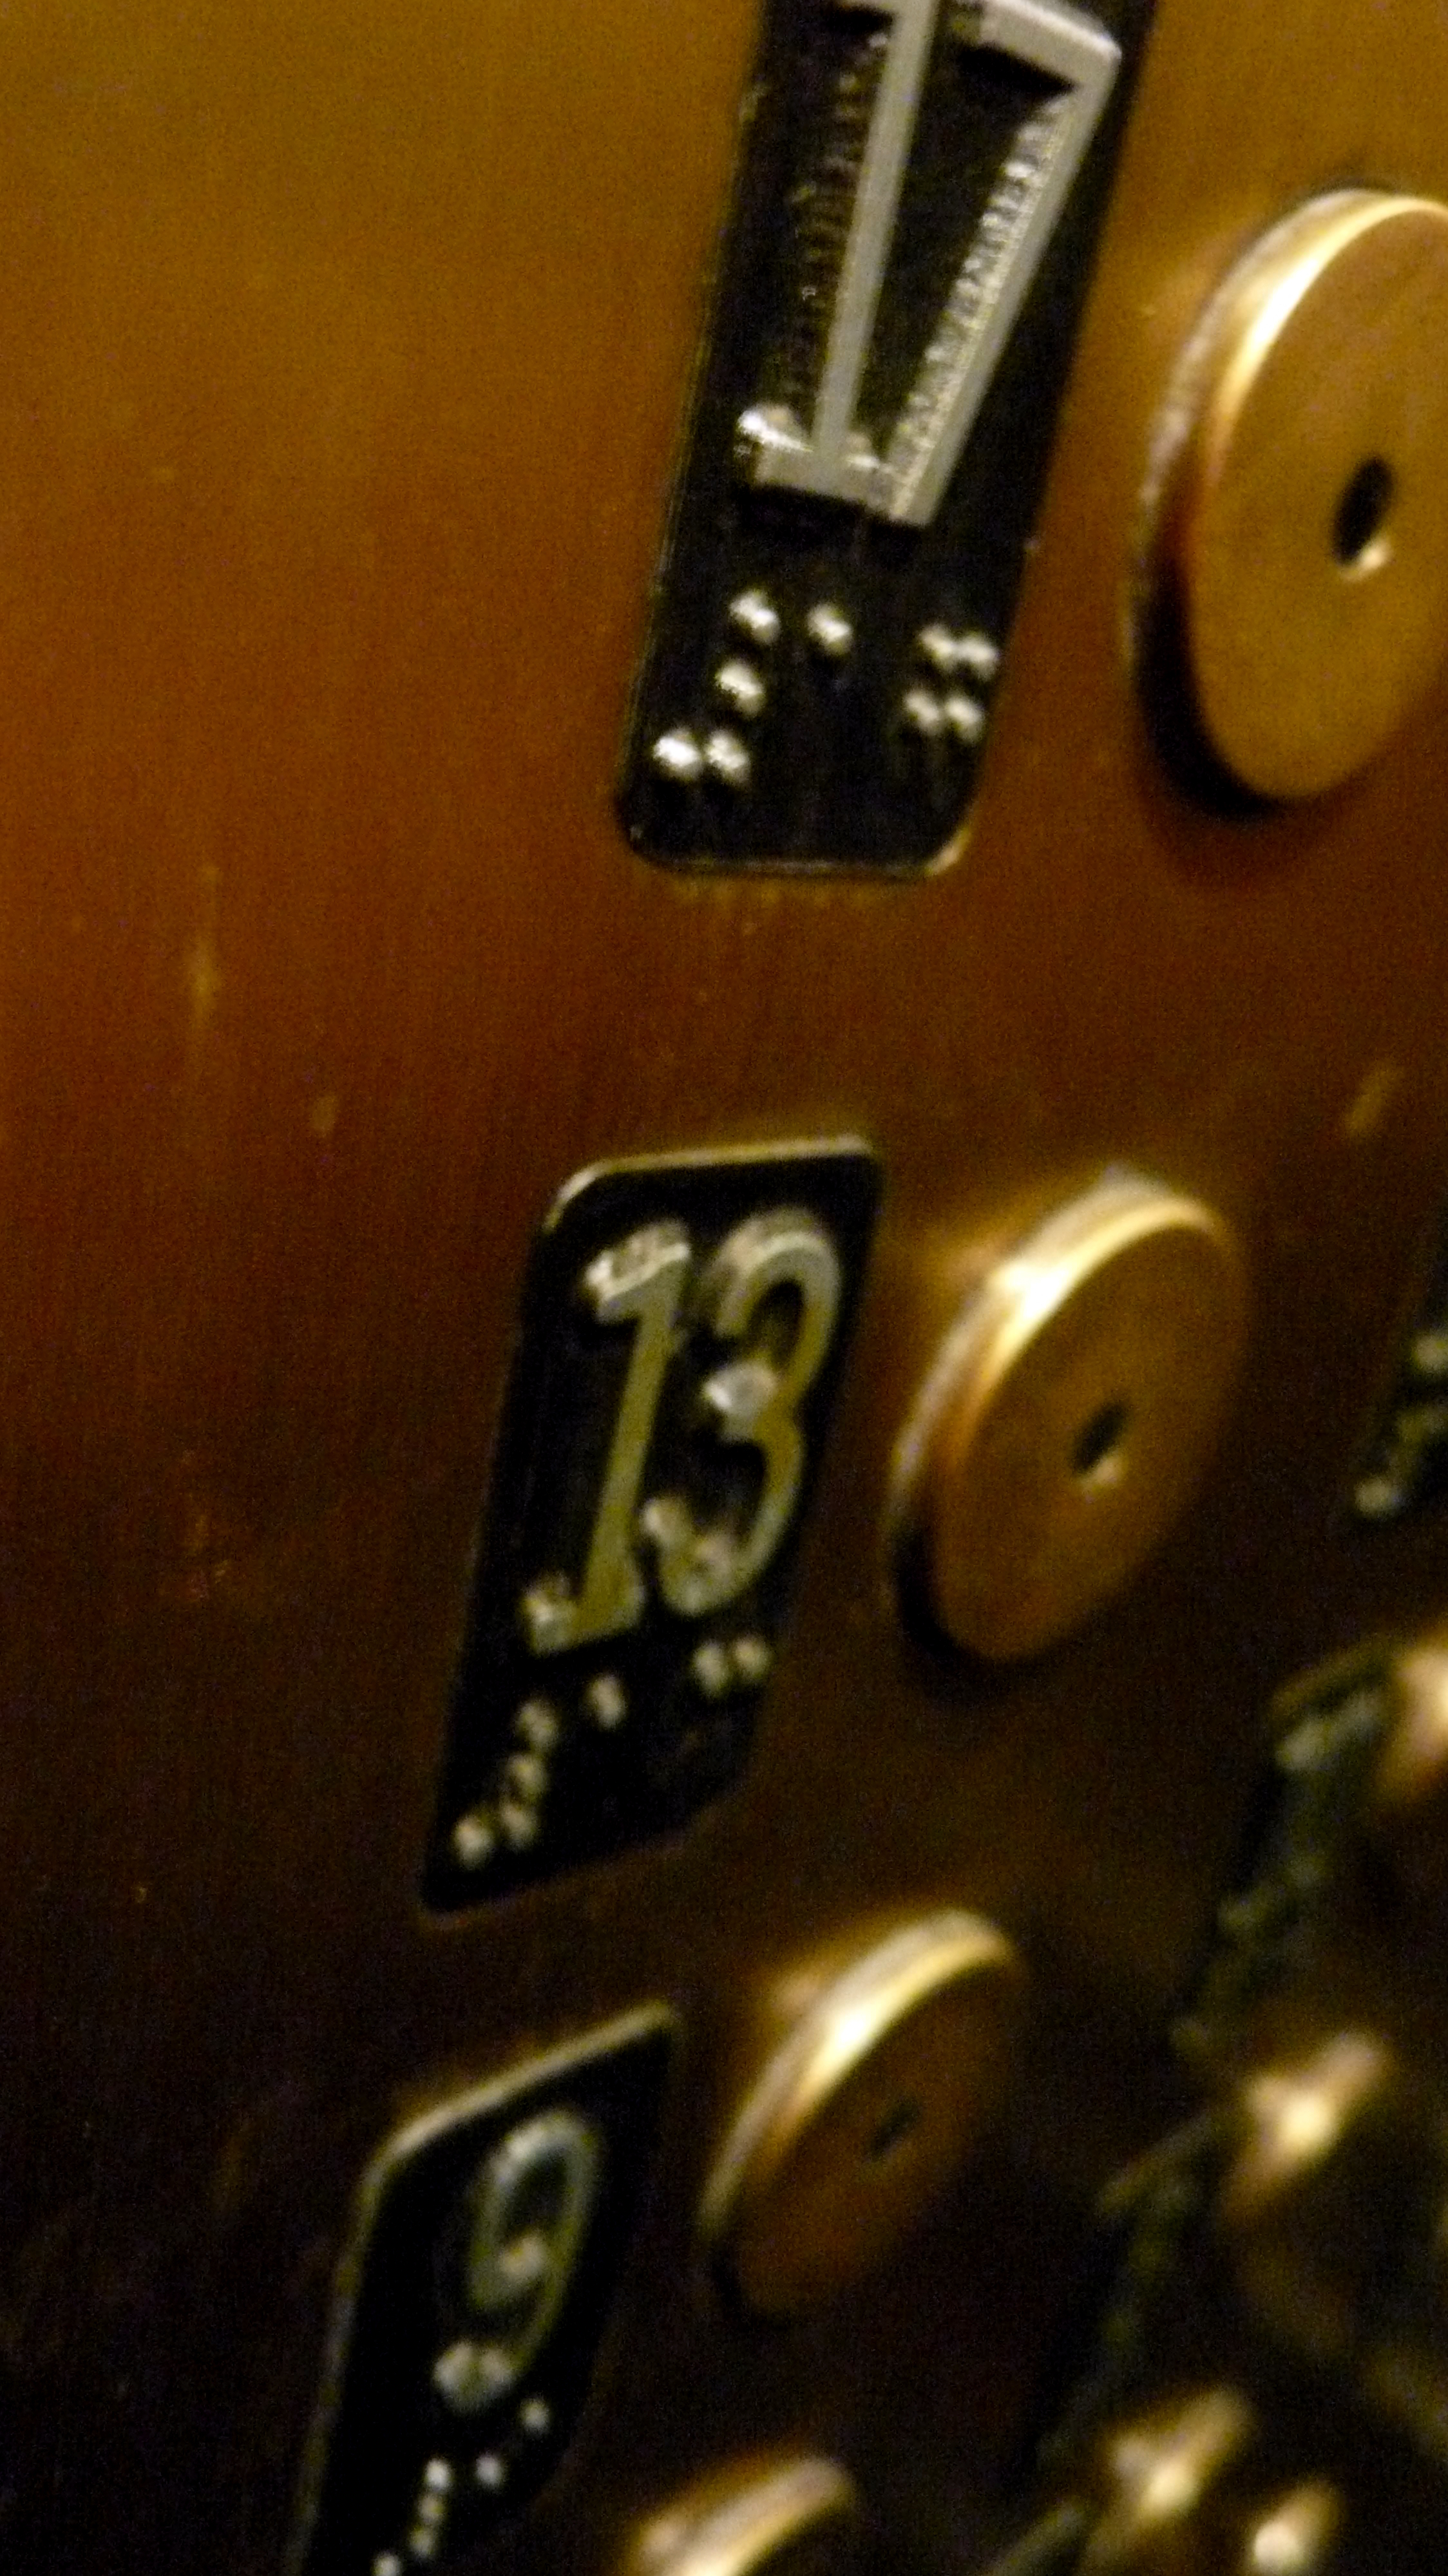 File:13th Floor Button, Elevator, Flatiron Buildin, NYC